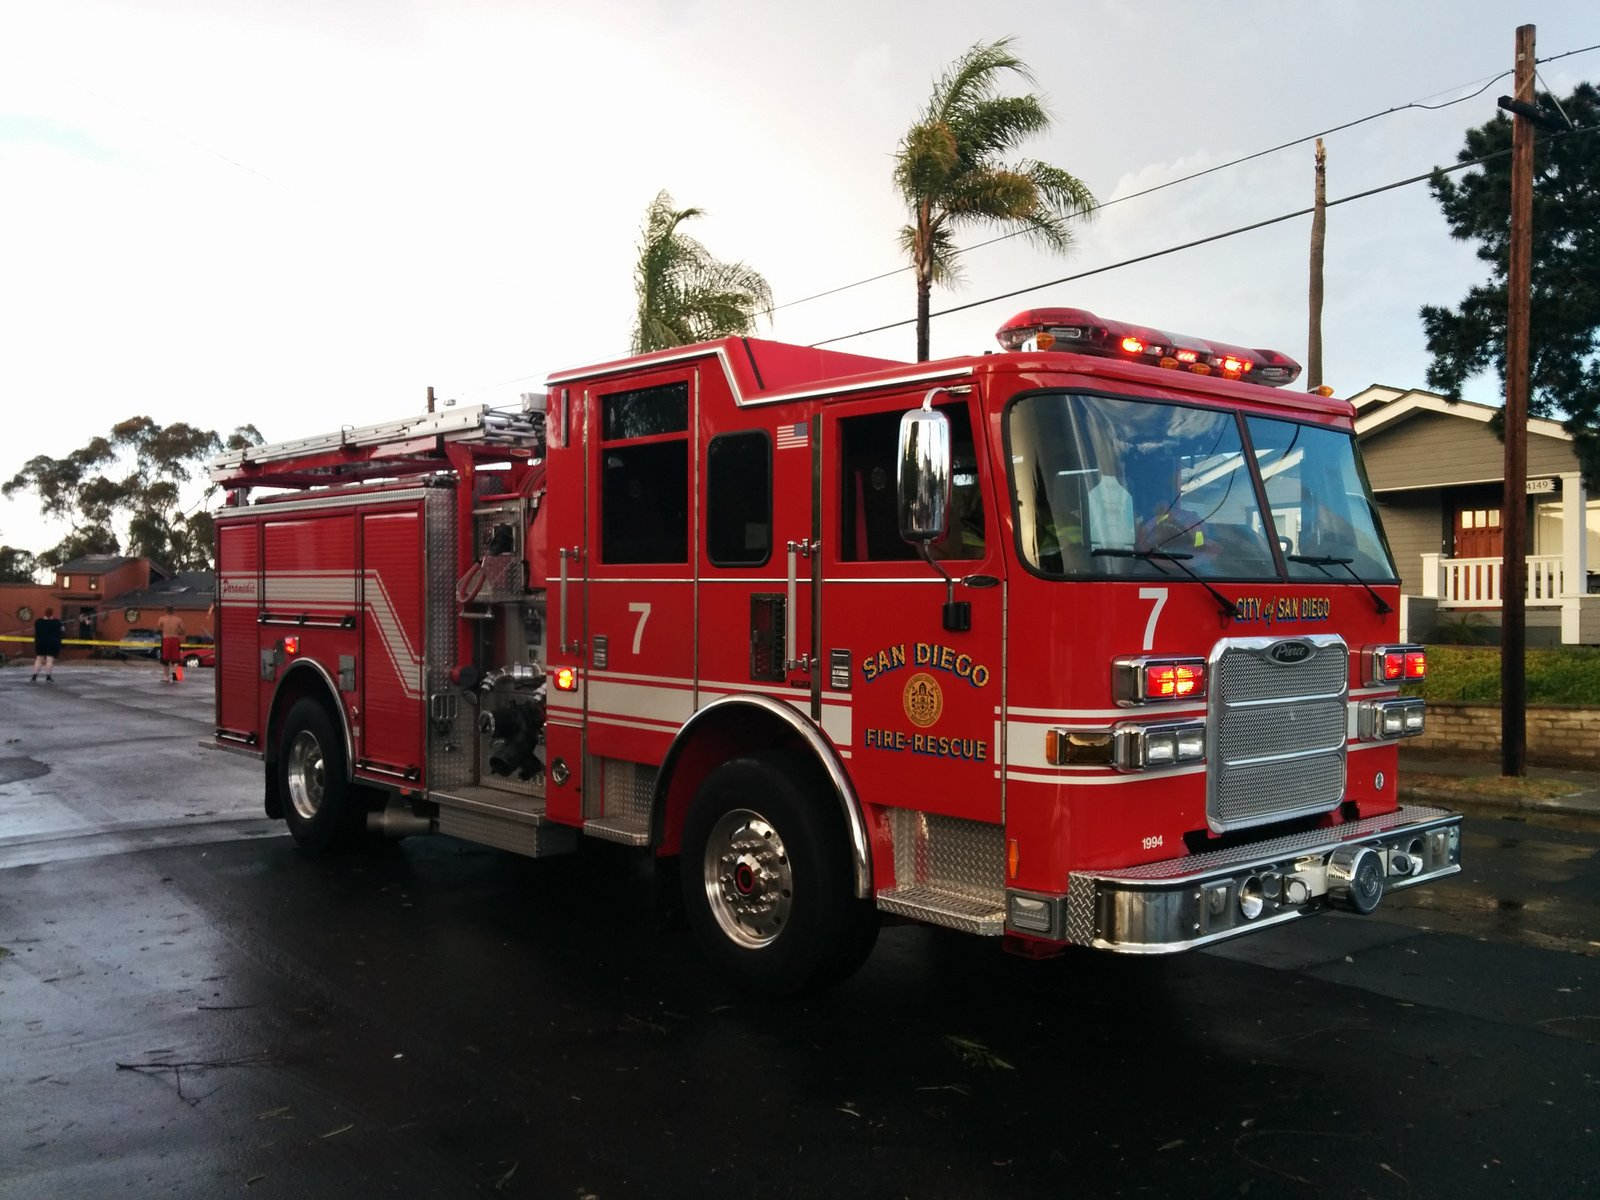 Camion cars san diego california departments emergency - Camion pompier cars ...